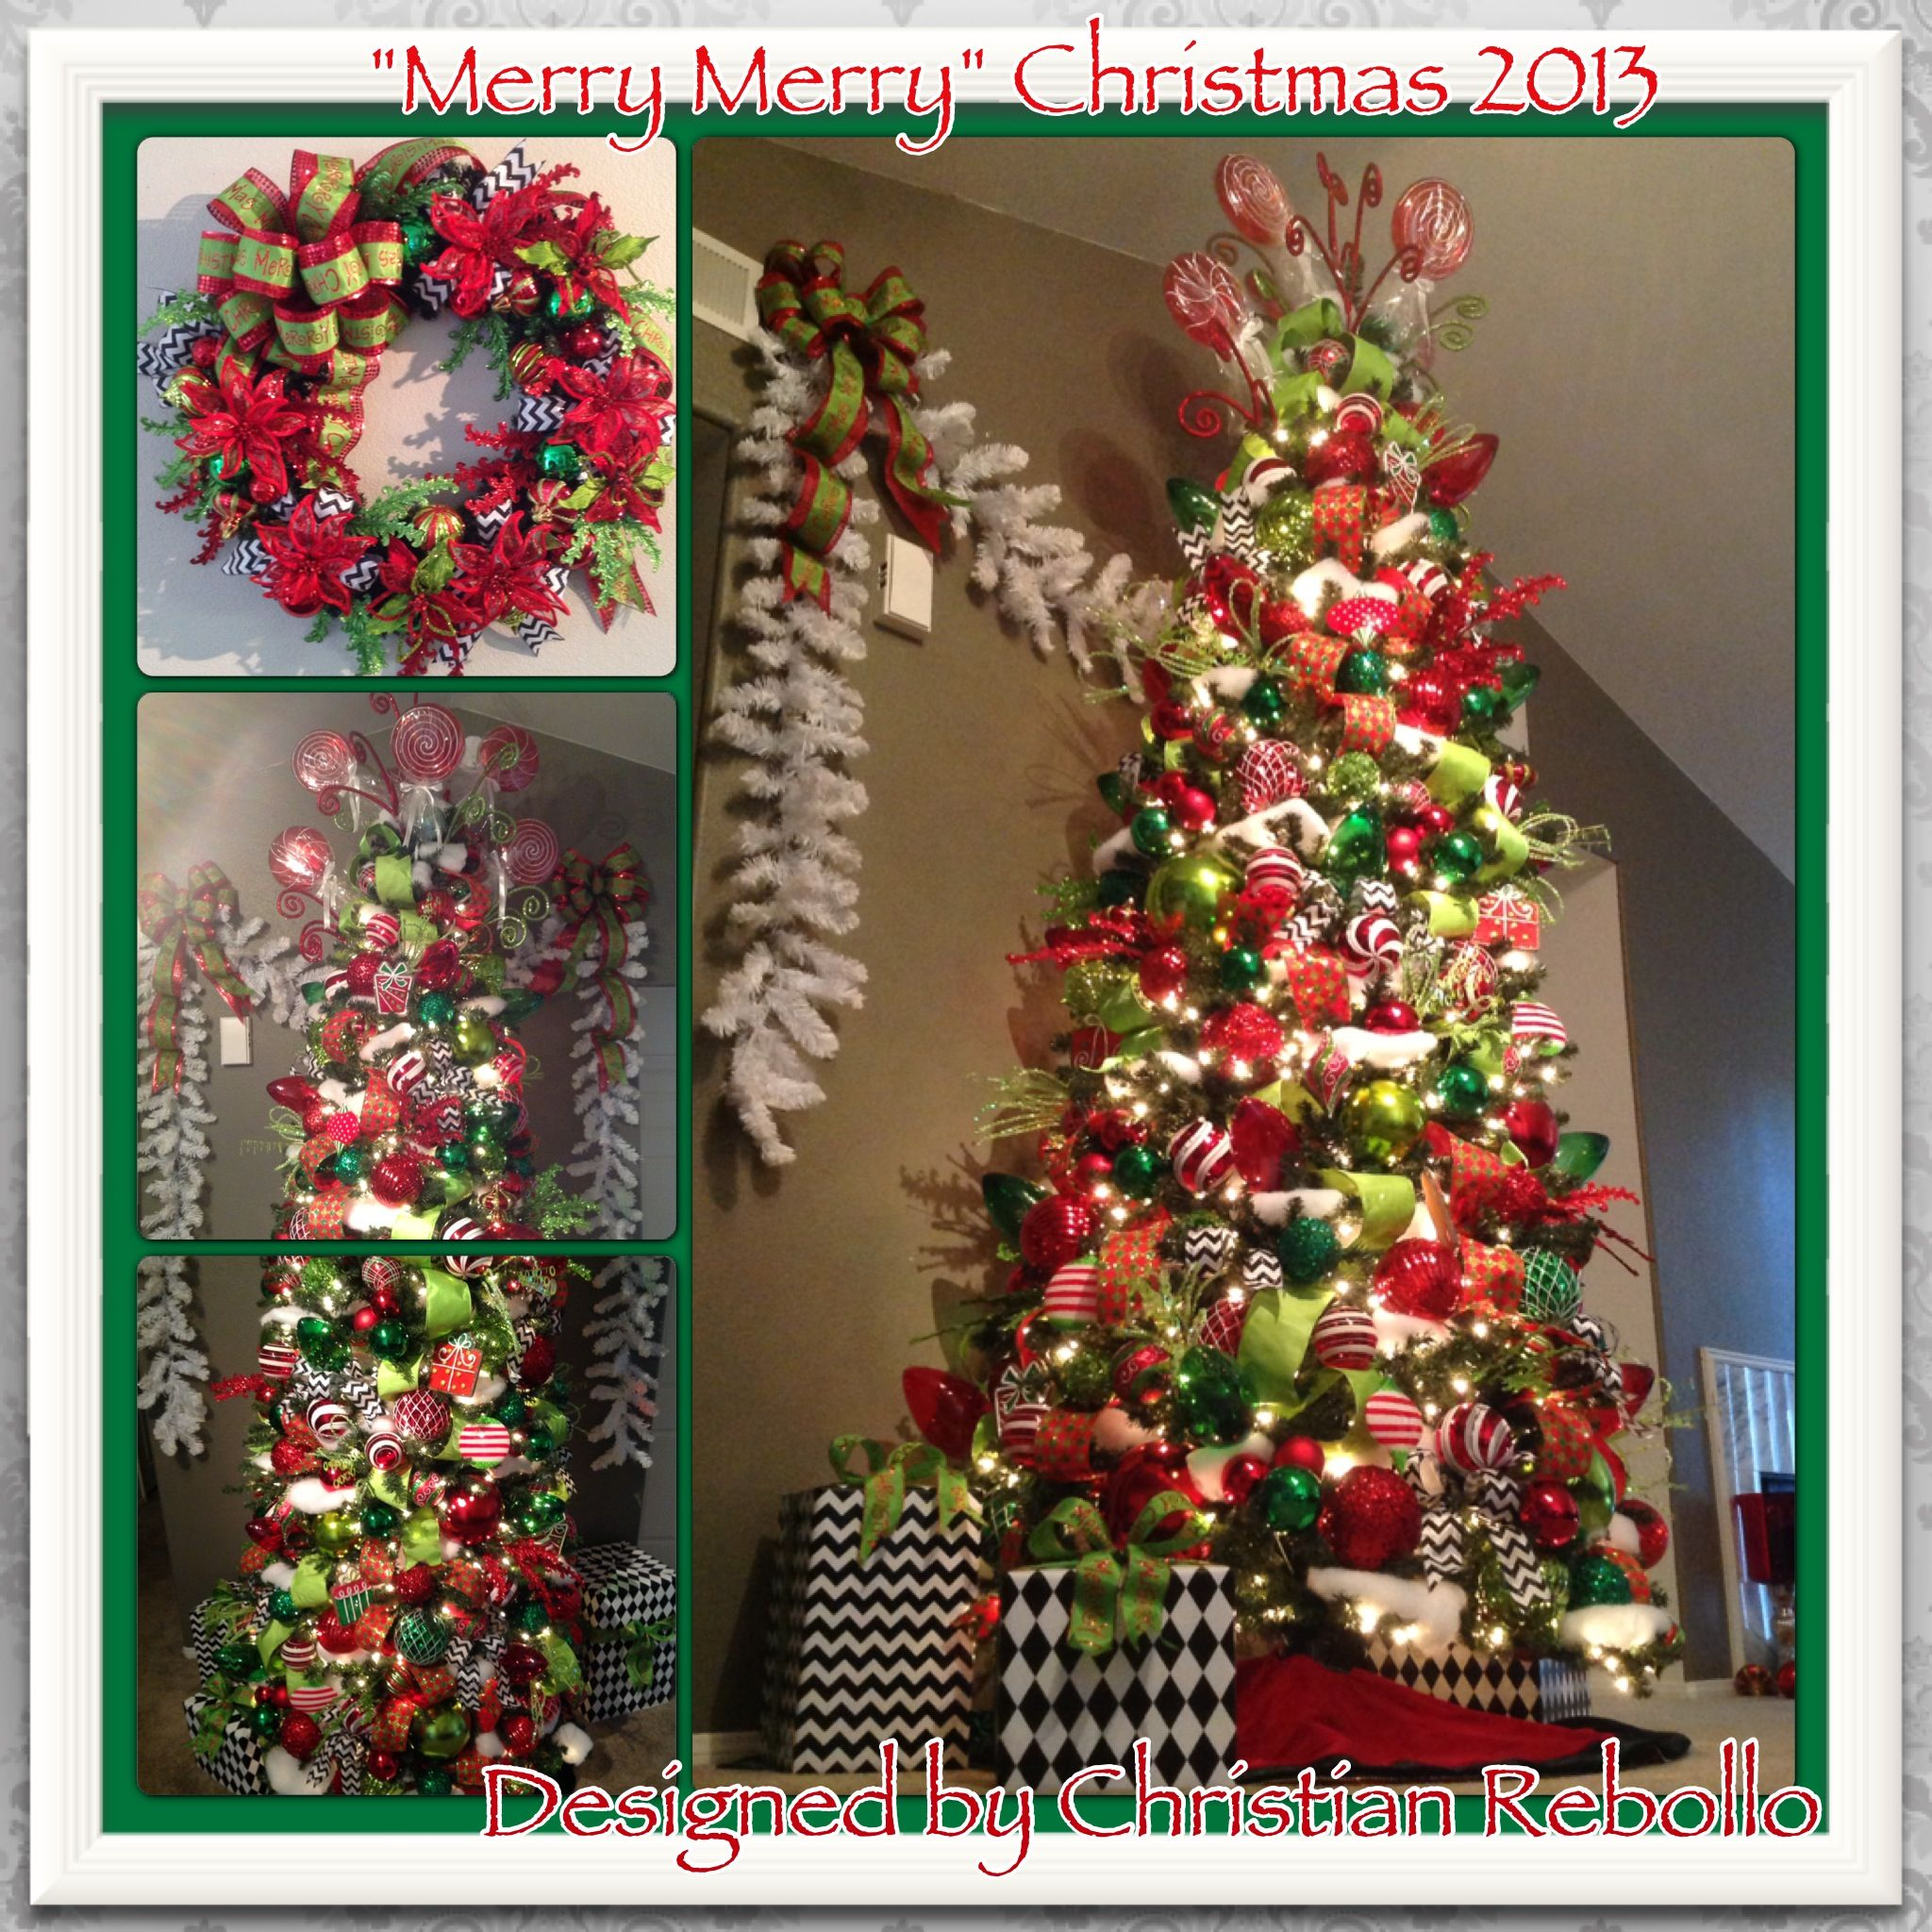 inspired by one of the most famous christmas stories merry merry was the theme for 2013s christmas decorations making its debut this is a completely